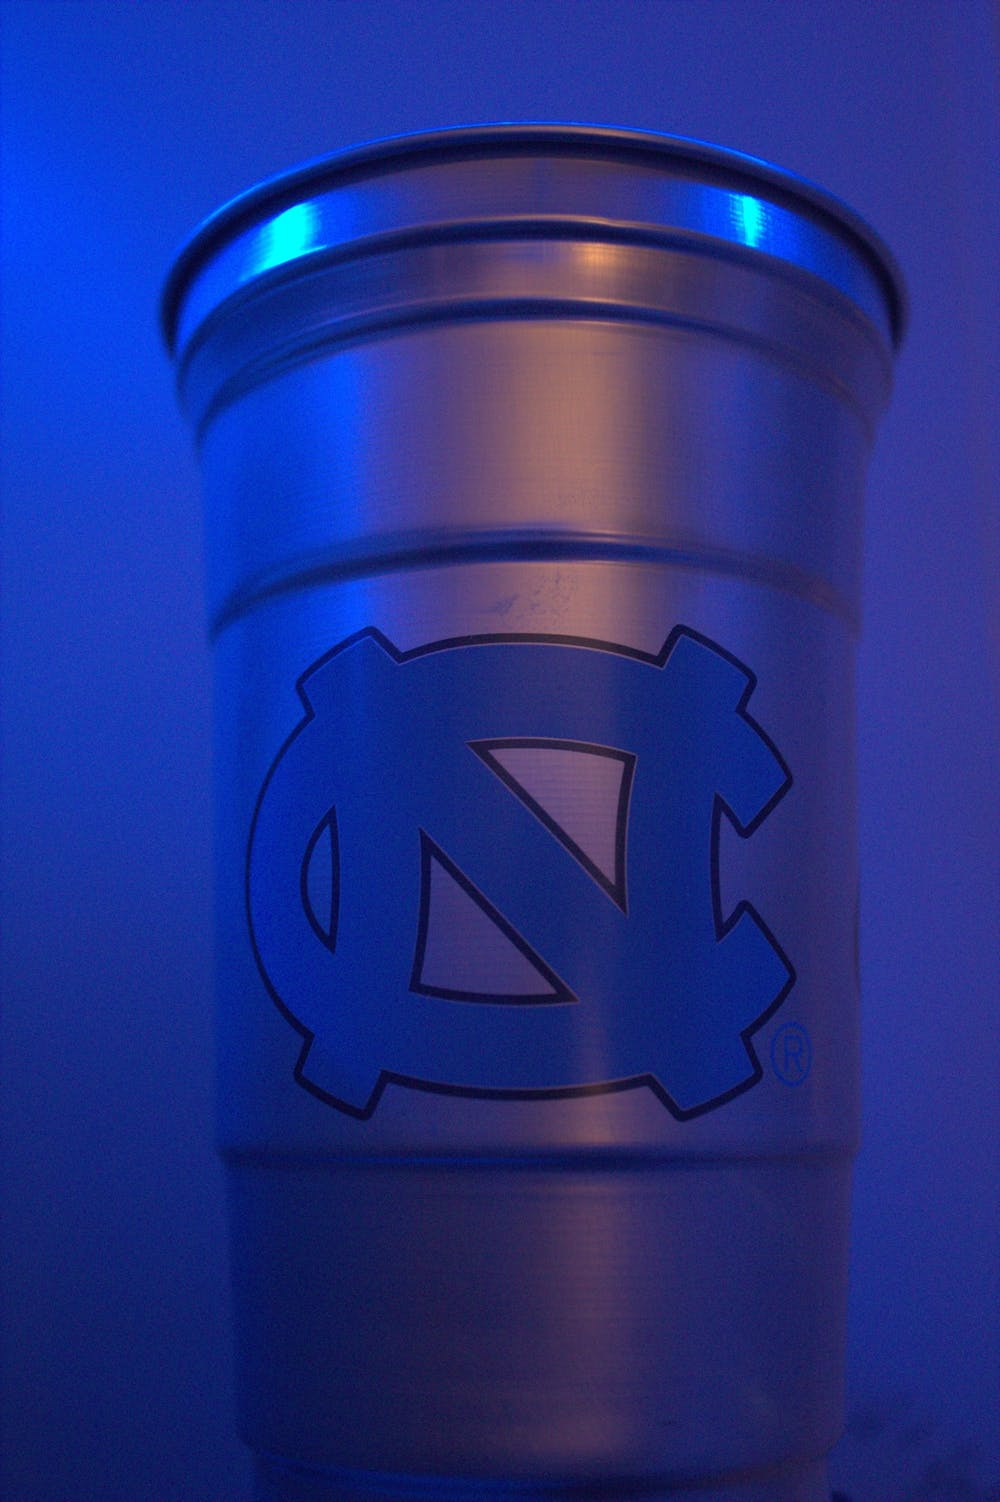 Aluminum cups are being sold at UNC athletic events to promote sustainability